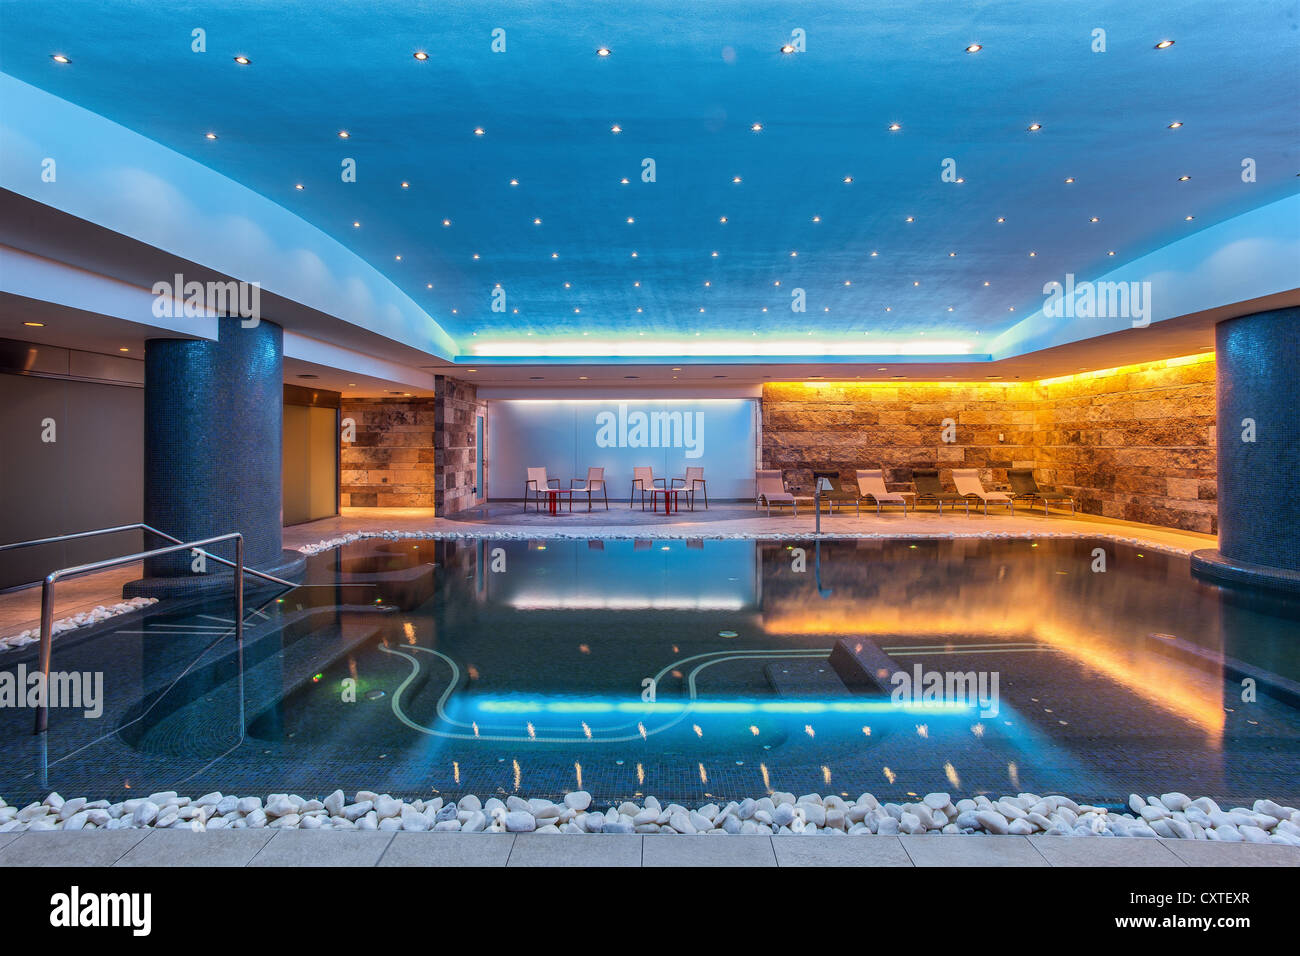 Still modern indoor pool - Stock Image